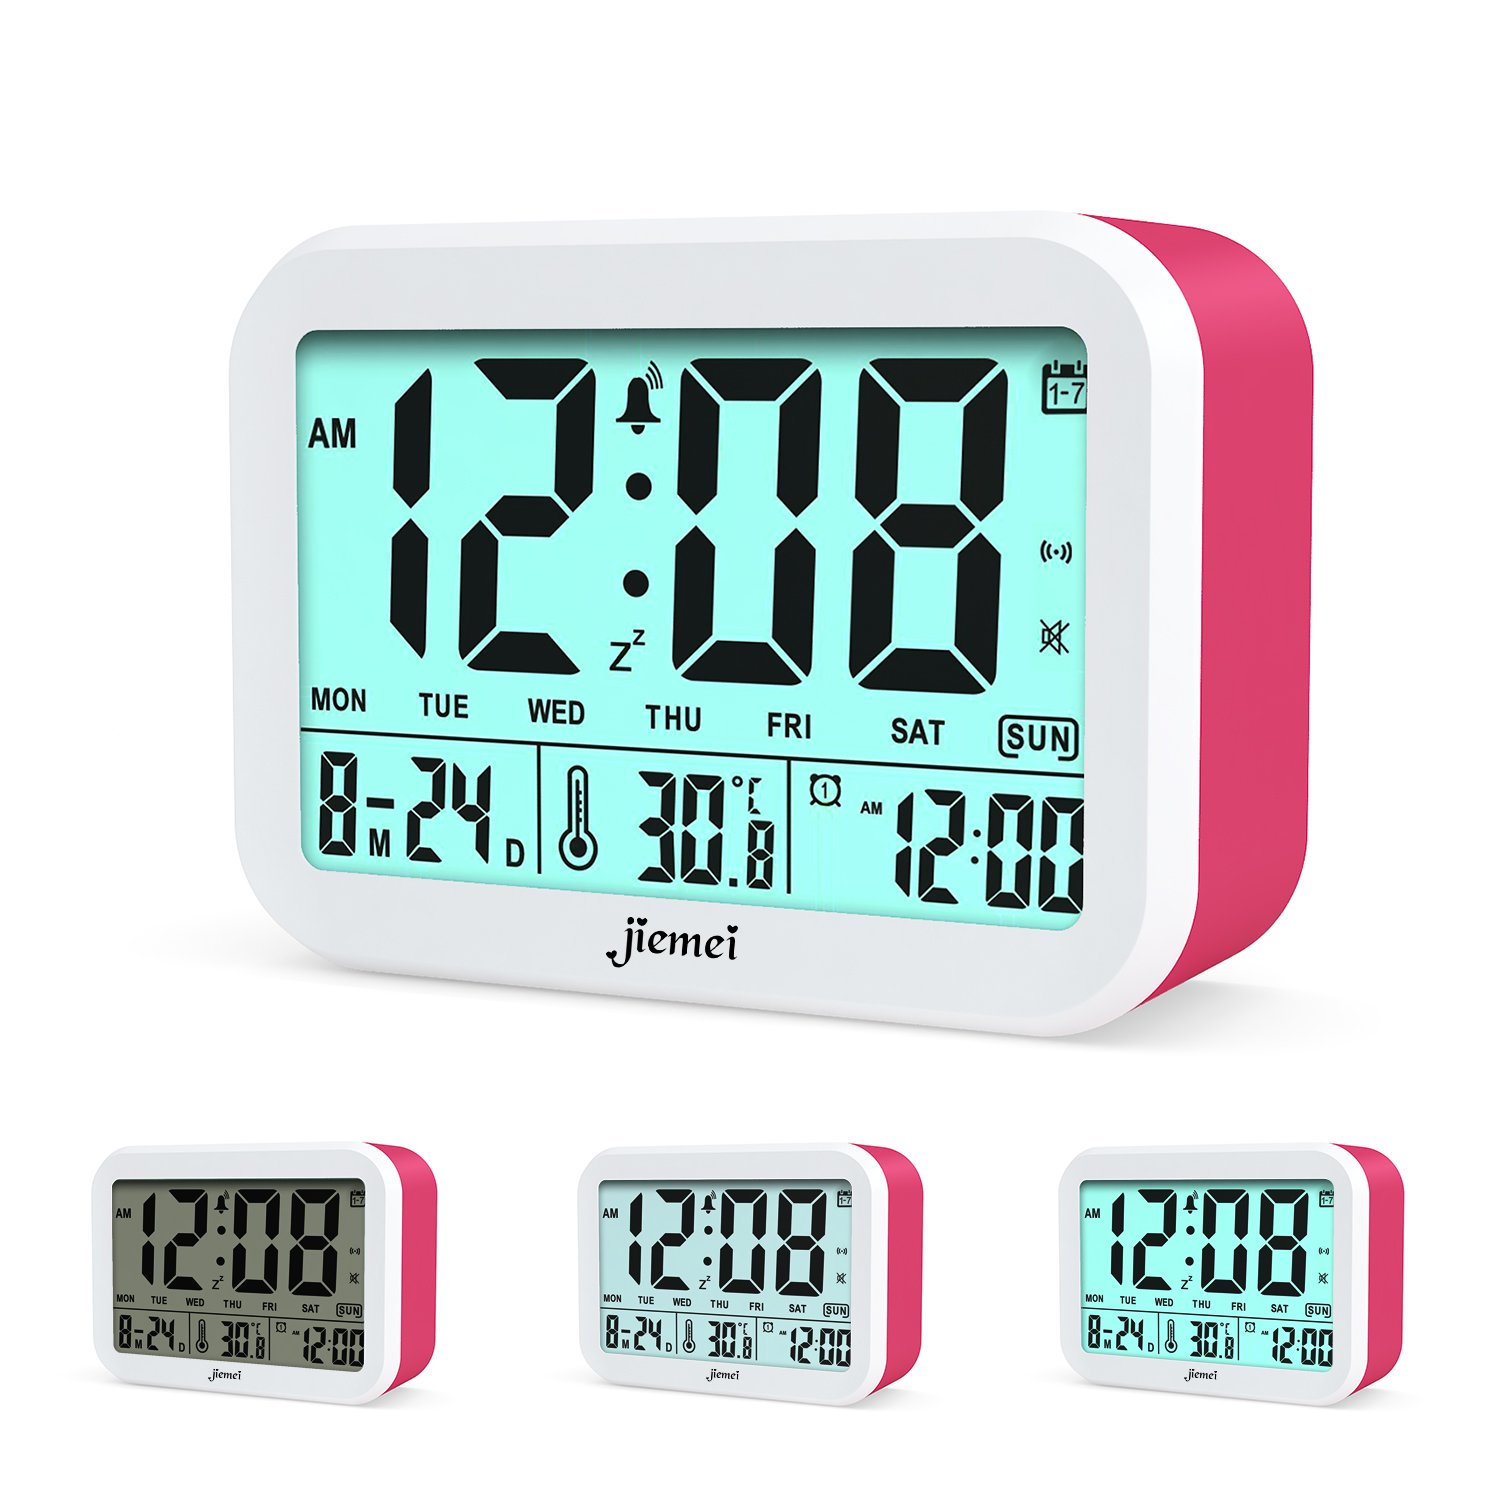 jiemei Digital Alarm Clock, Home Loud Alarm Clocks for Kids and Adults, Battery Operated, 4.5'' Display, Smart Backlight, 3 Alarms, 7 Rings, Great Gifts for School (Blue) 4.5'' Display EU-AL2-WB